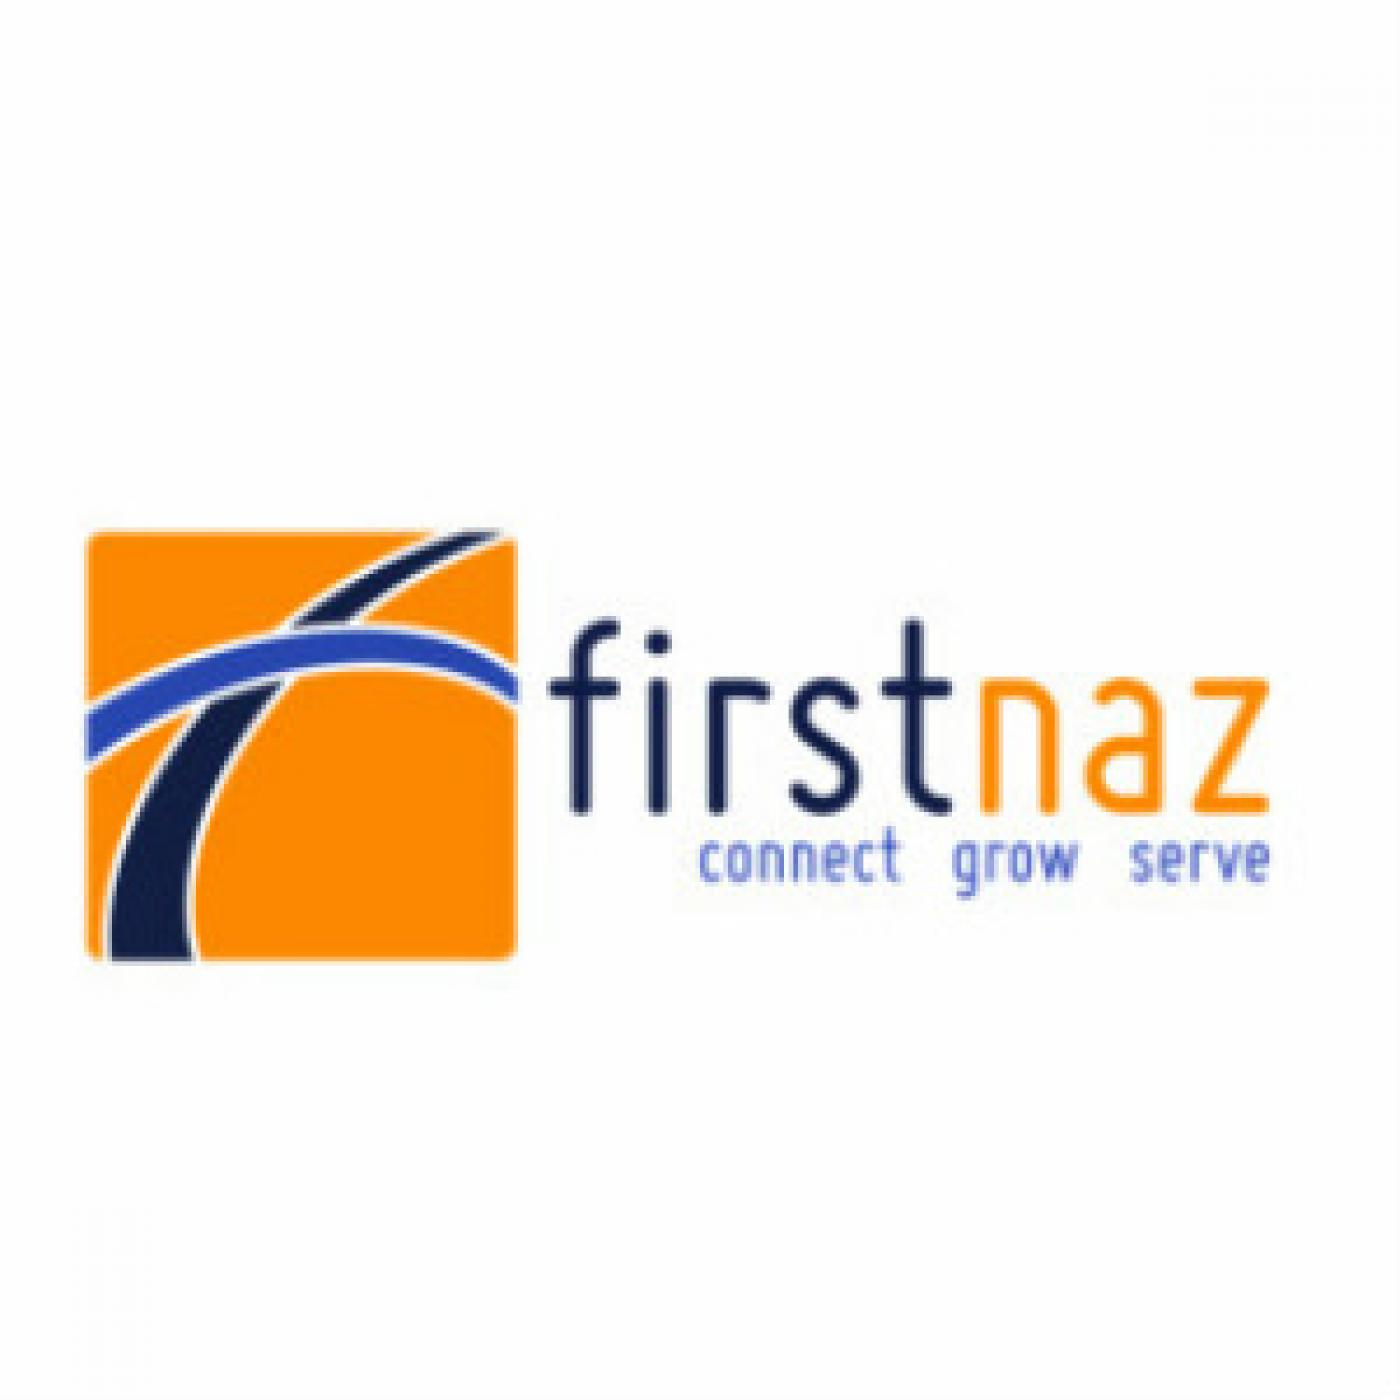 Lessons from FirstNaz